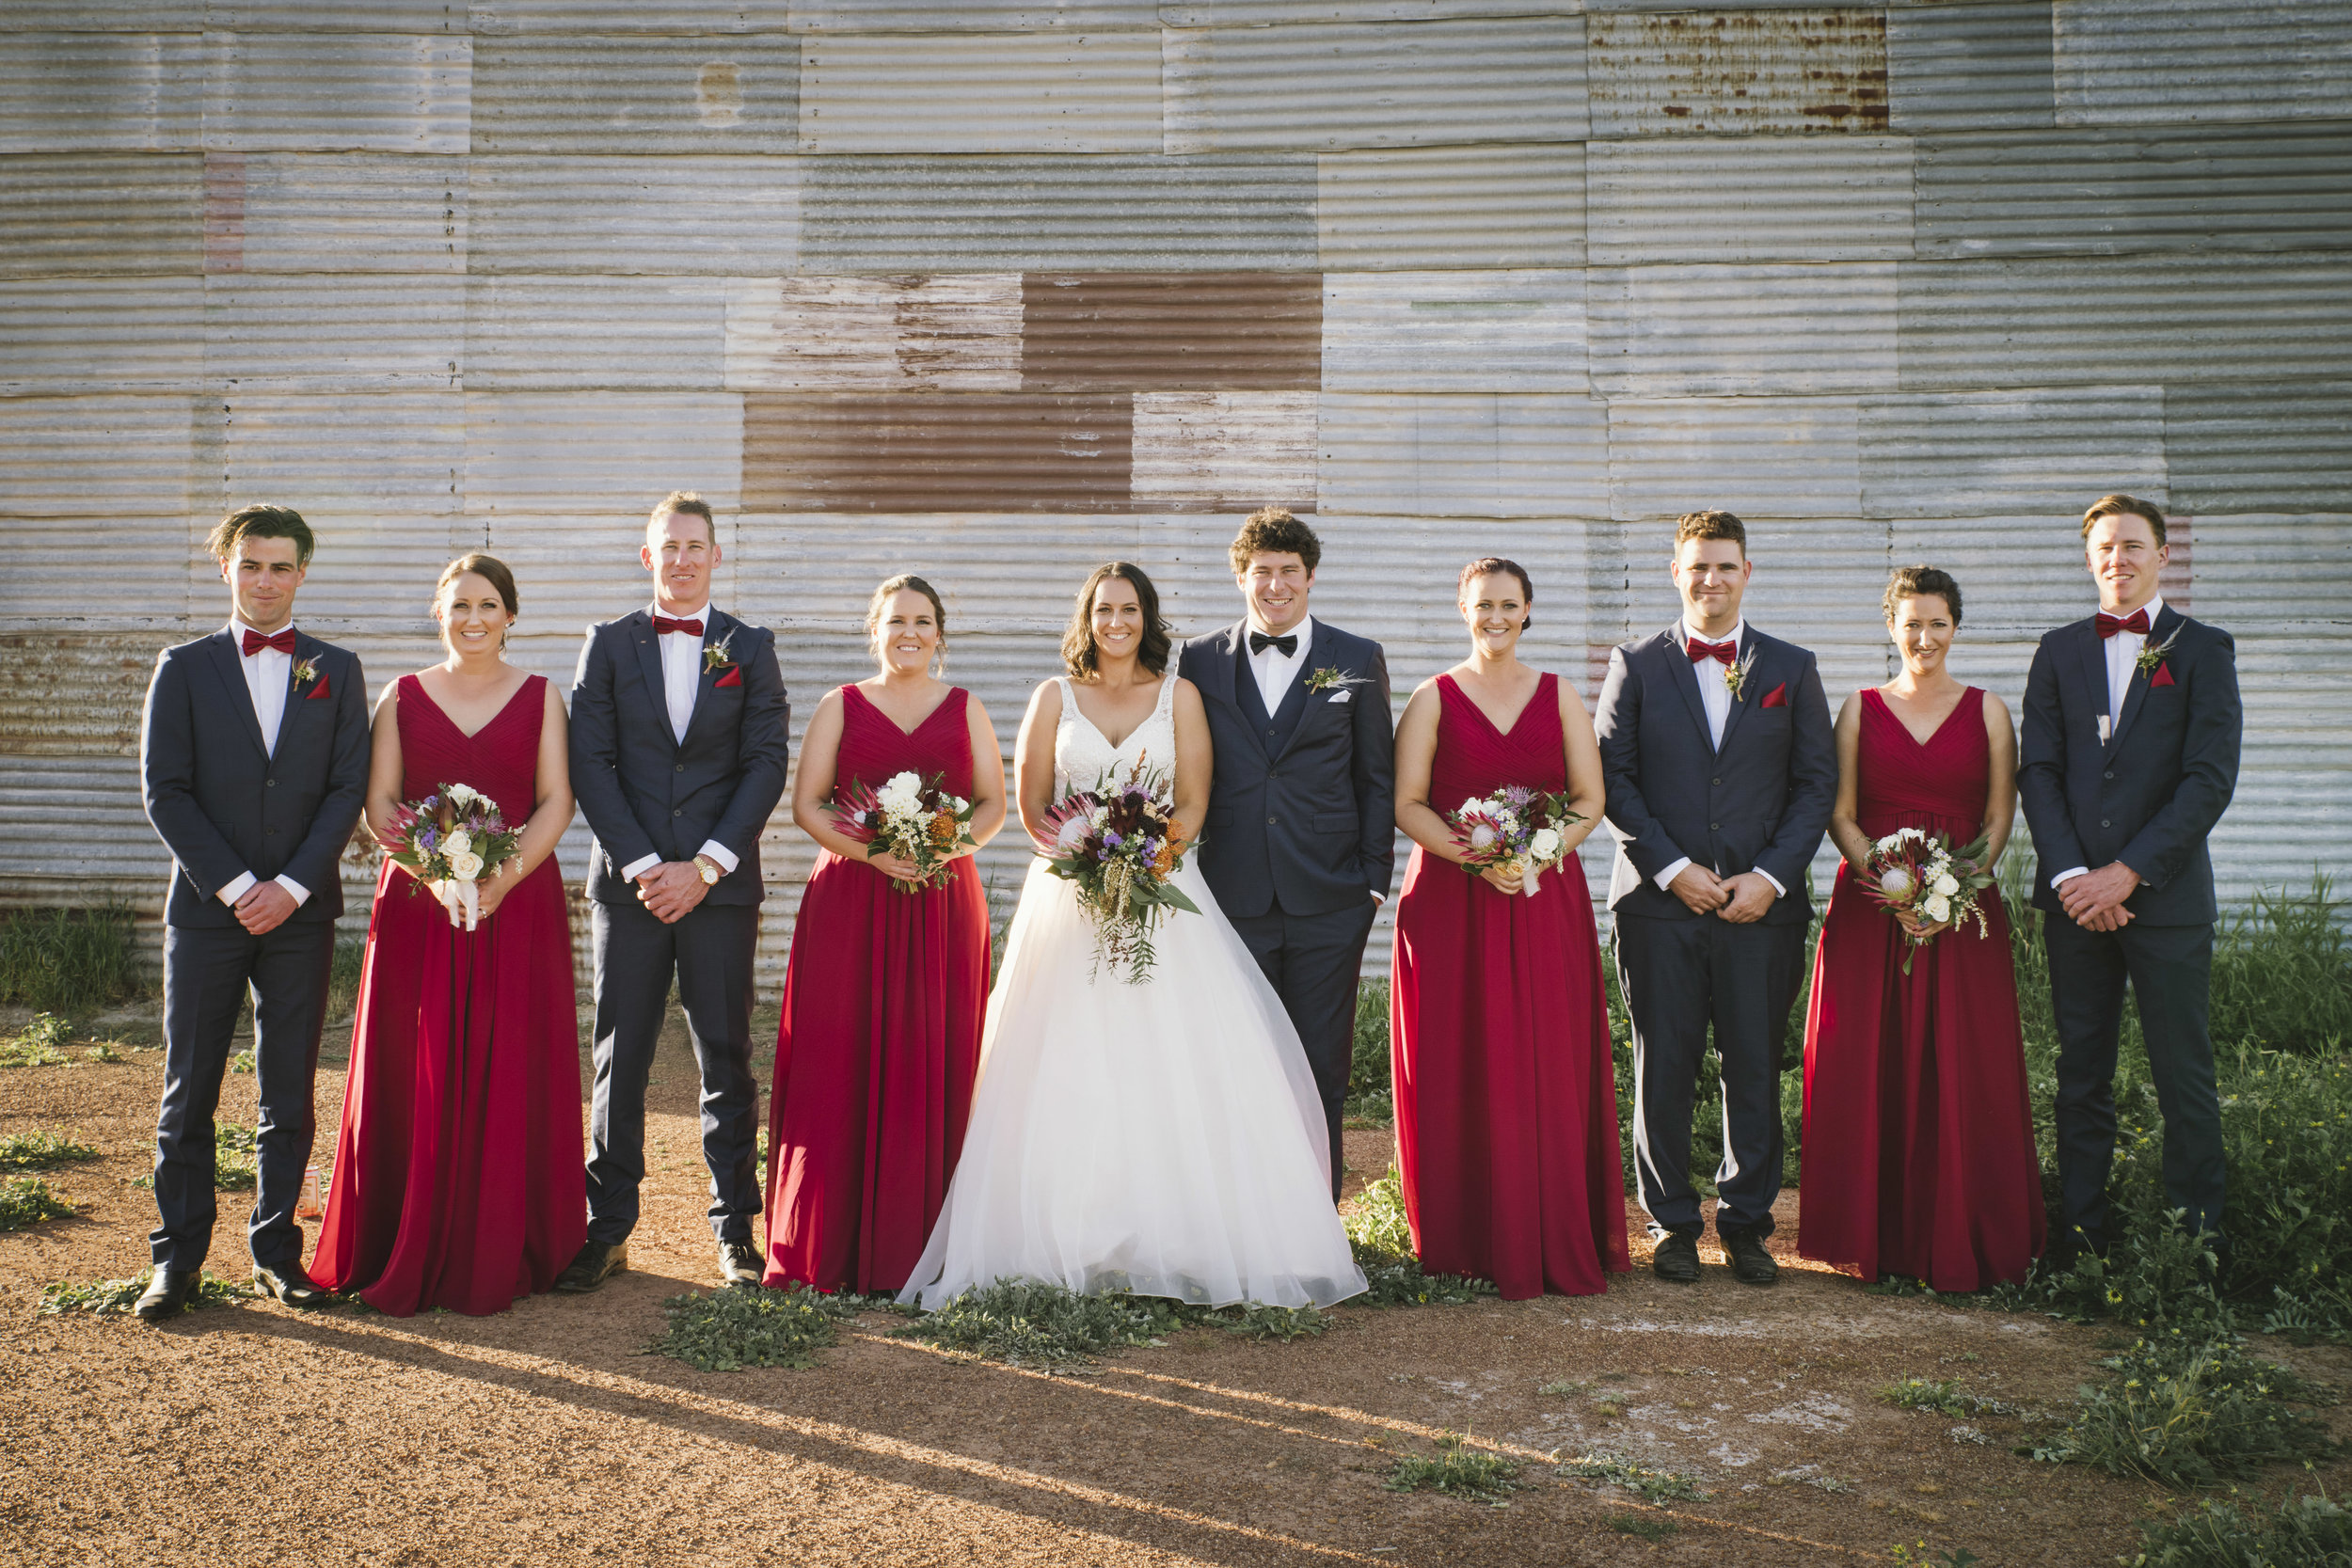 Angie Roe Photography Wheatbelt Avon Valley Farm Wedding (44).jpg